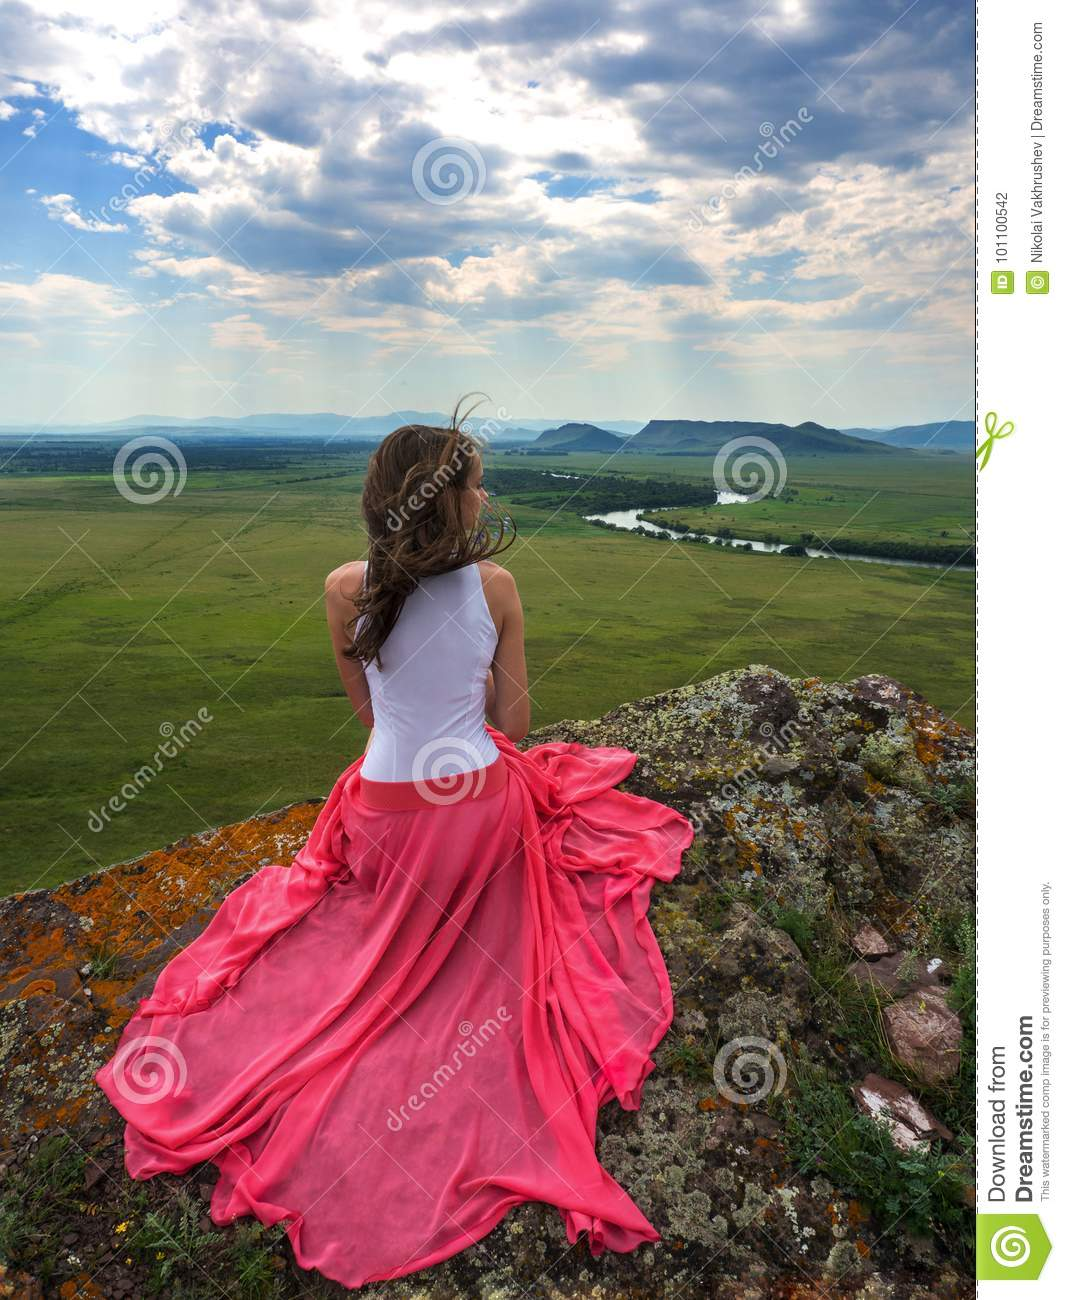 Download Brunette In A Beautiful Dress On The Edge Of A Cliff. Stock Photo - Image of hair, long: 101100542